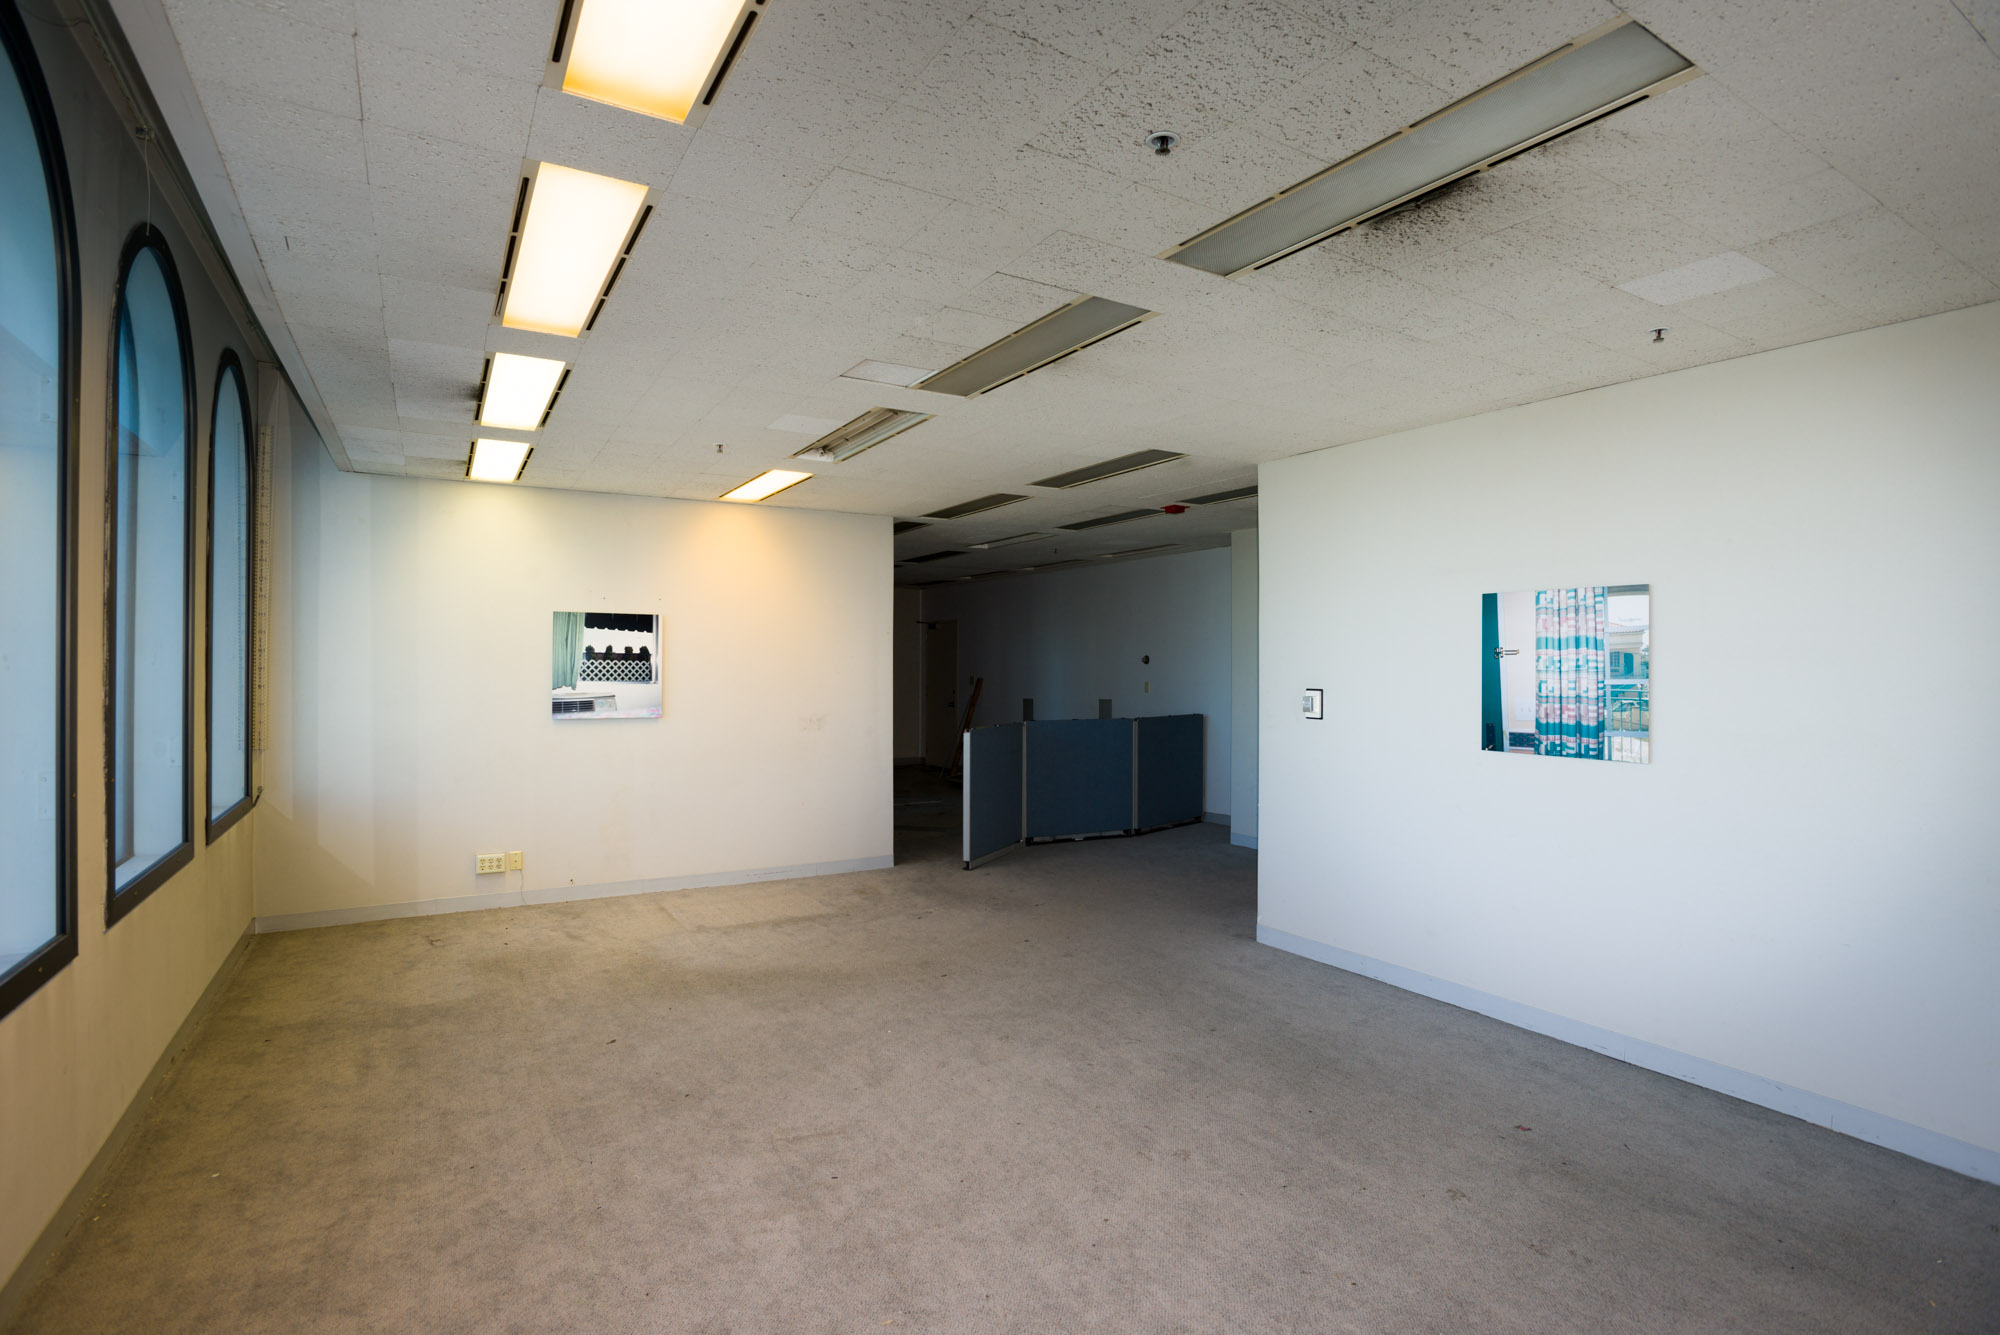 Installation view, 9800, 9800 S. Sepulveda Blvd., Los Angeles, CA, October 2015